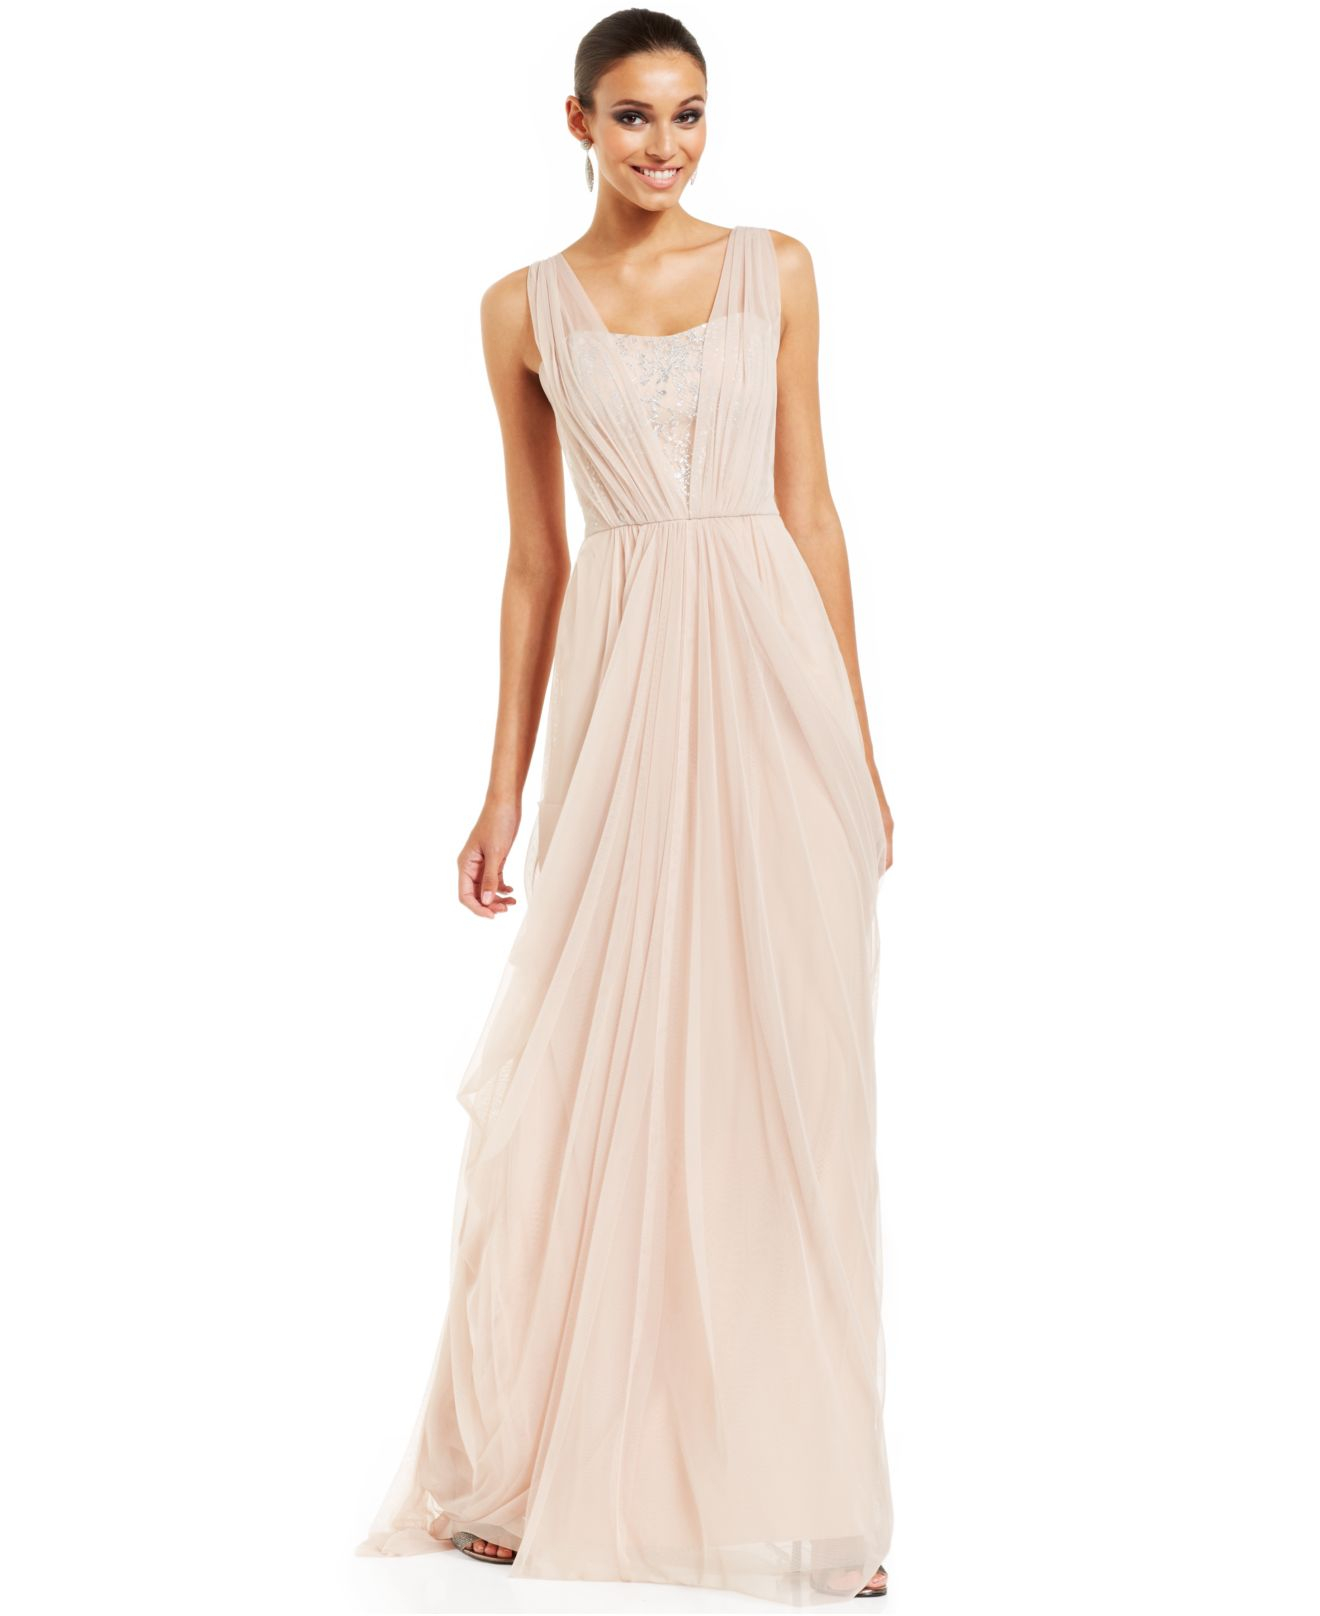 Goddess Dress: Vera Wang Lace-Inset Draped Goddess Gown In Pink